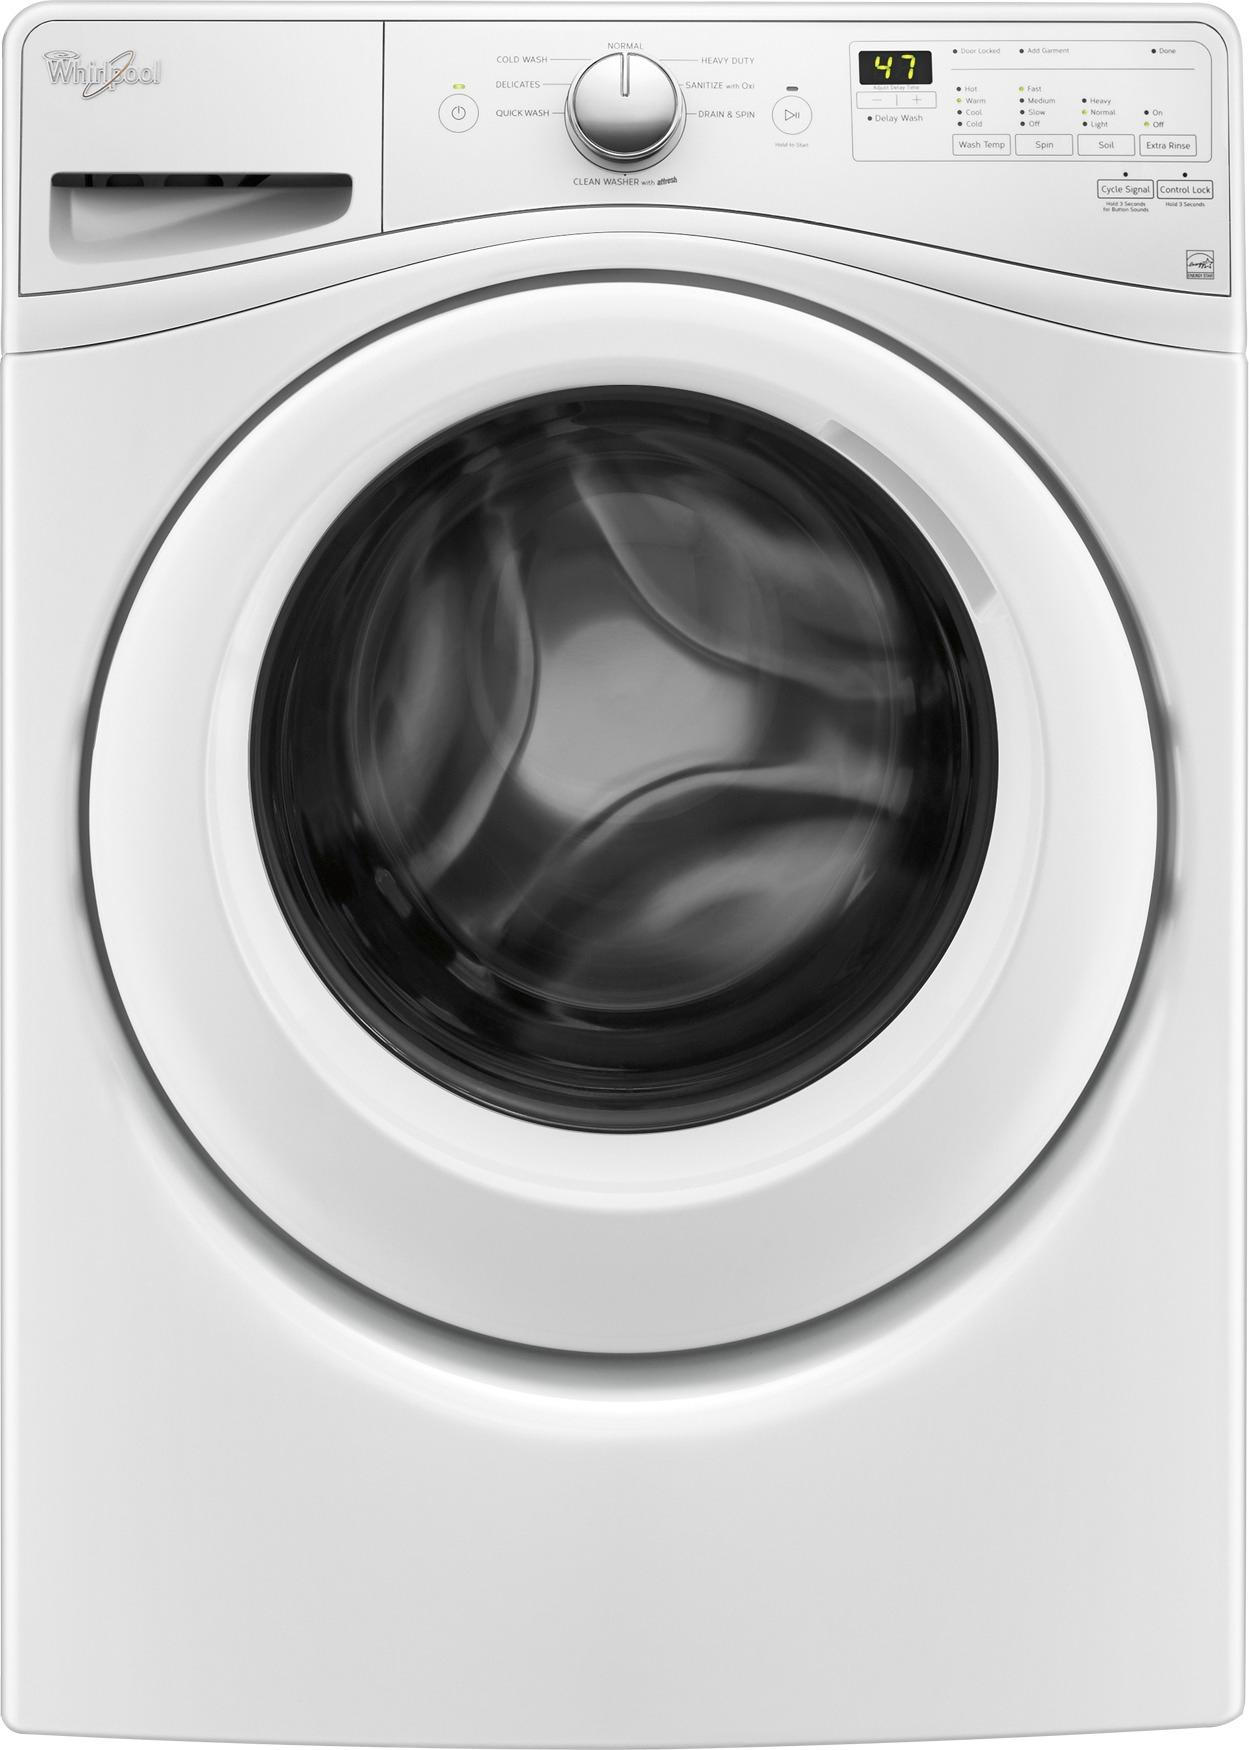 hight resolution of best buy whirlpool 4 5 cu ft 8 cycle high efficiency front load washer white wfw75hefw